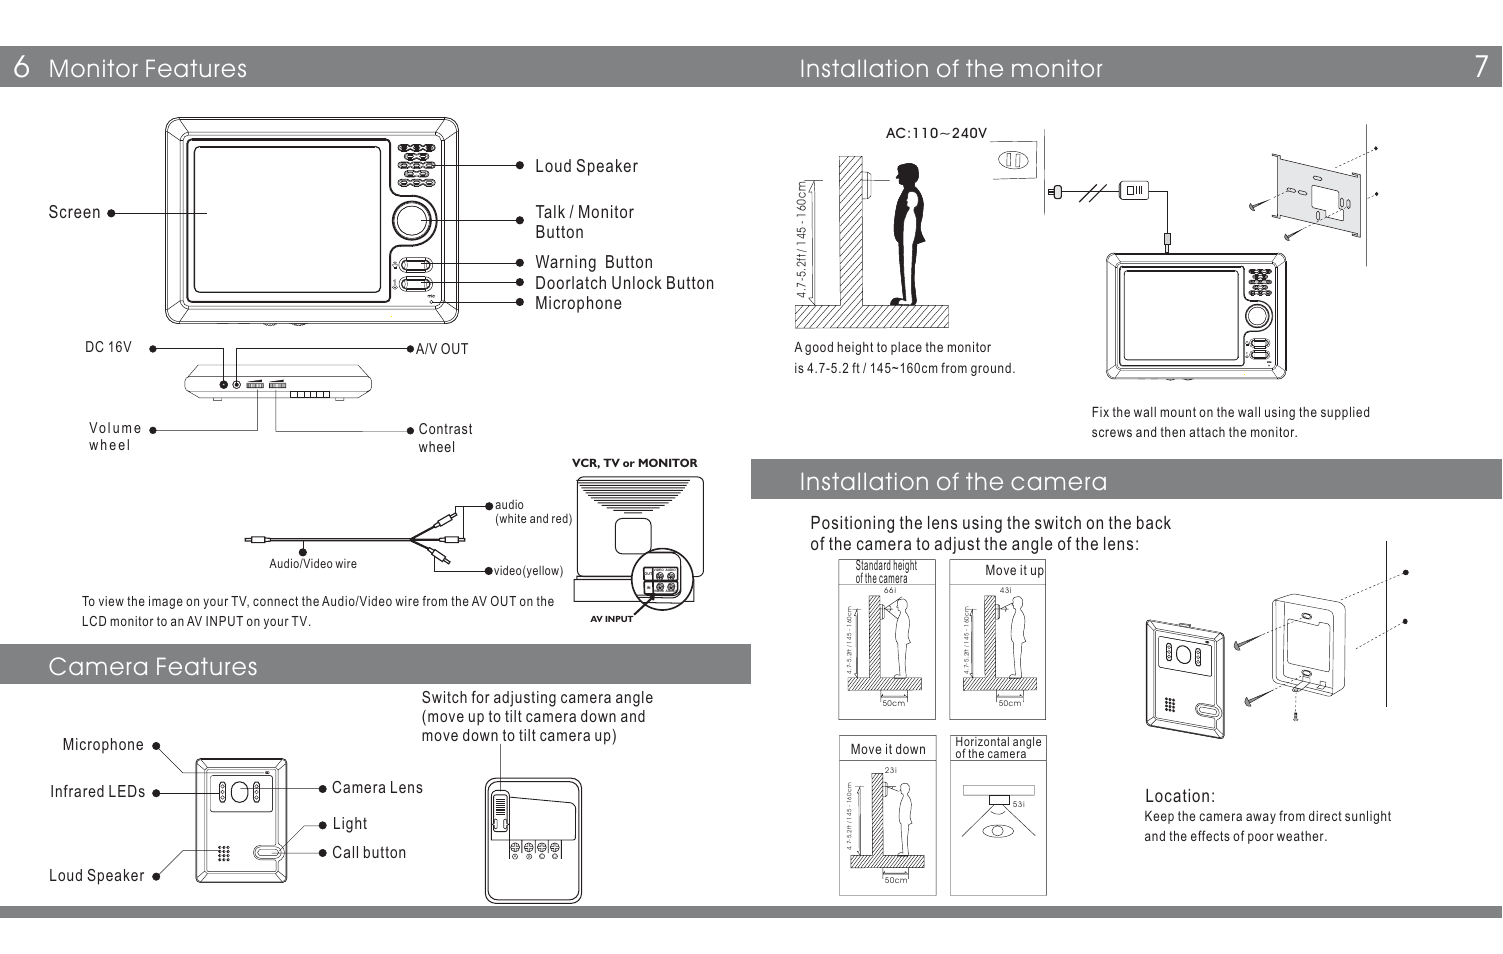 Installation of the monitor, Monitor features